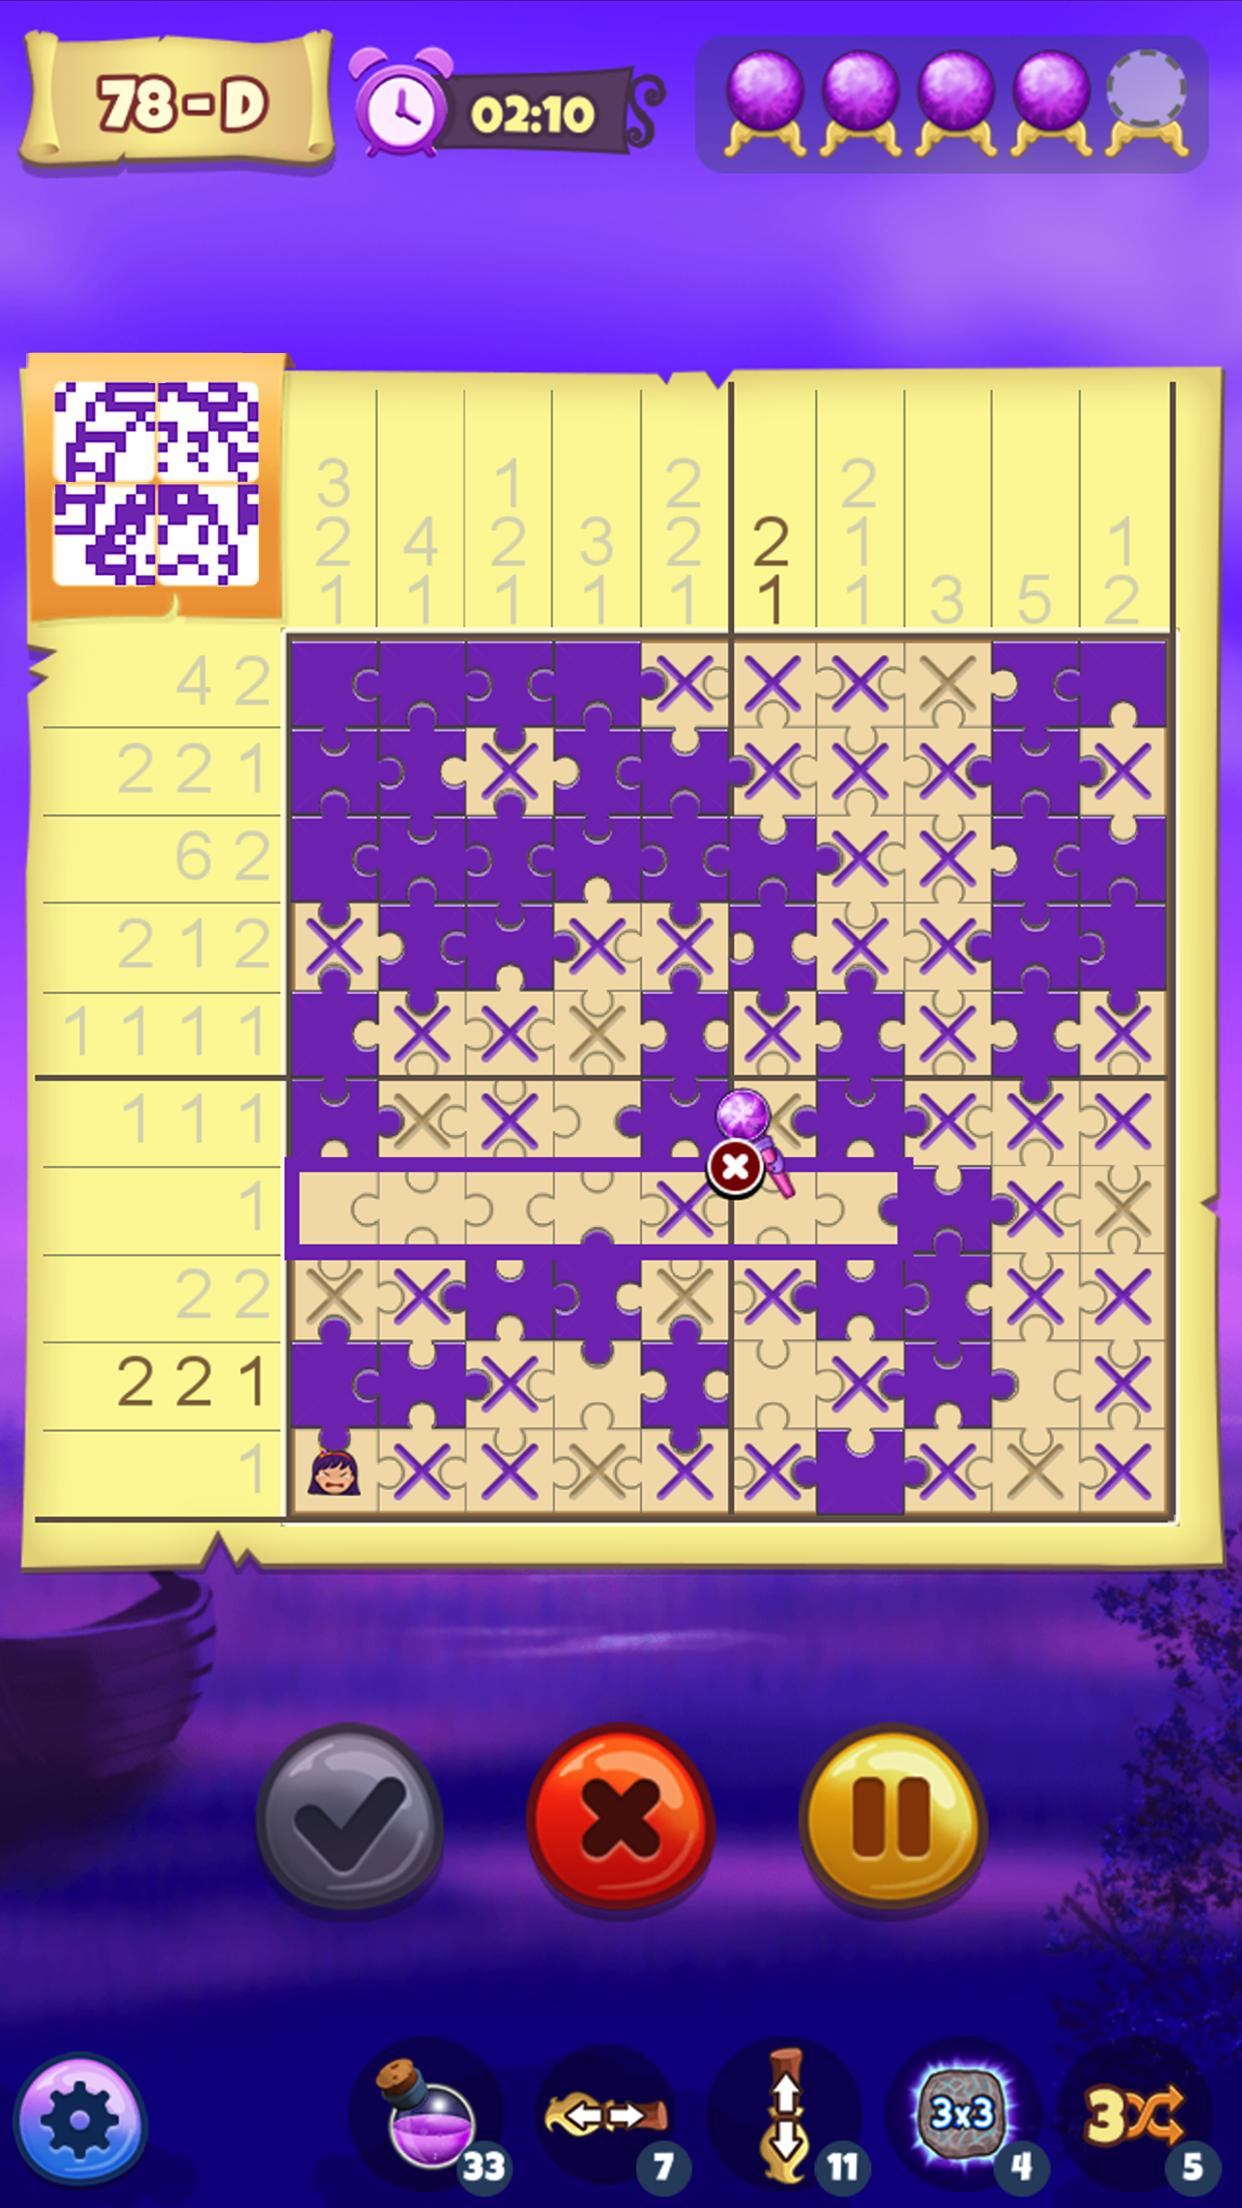 The Mystic Puzzland - Griddlers & Nonogram Puzzles 1.0.26 Screenshot 2